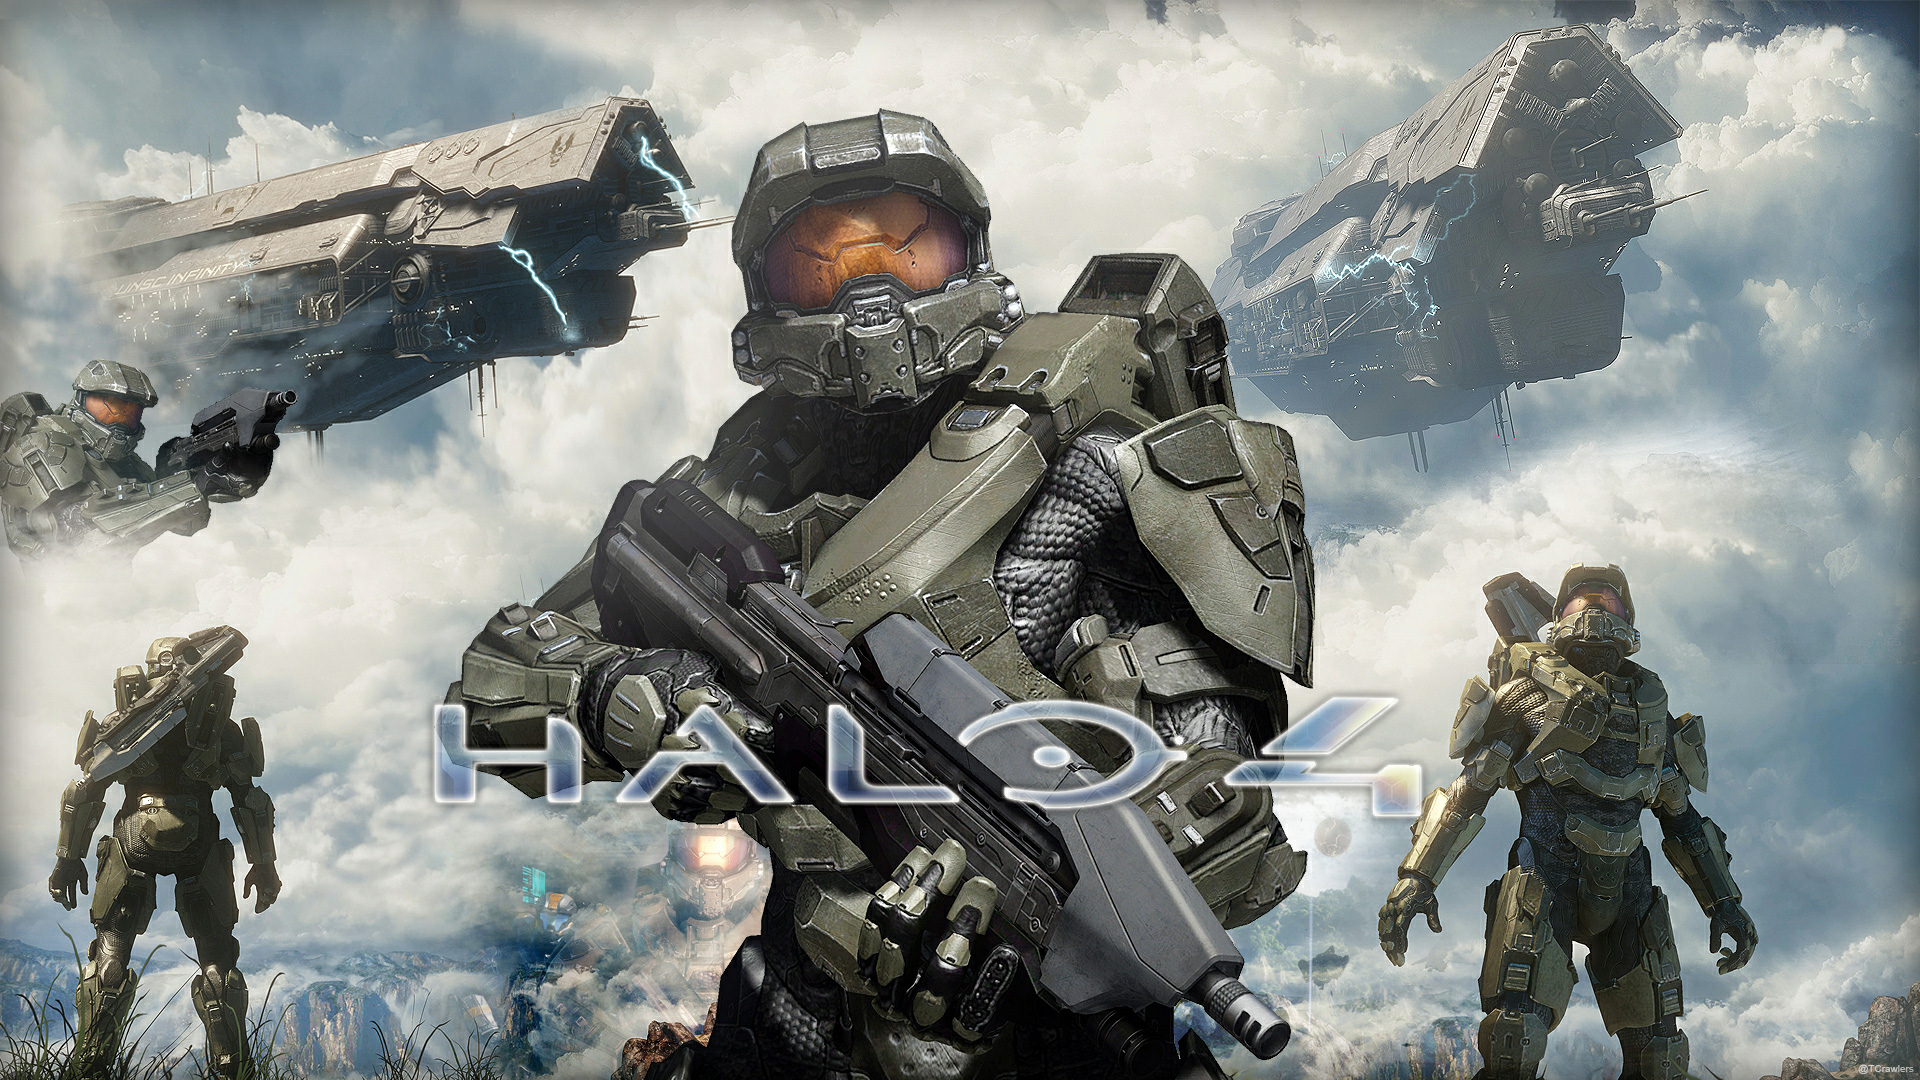 HD Halo 4 Wallpapers and Photos HD Games Wallpapers 1920x1080